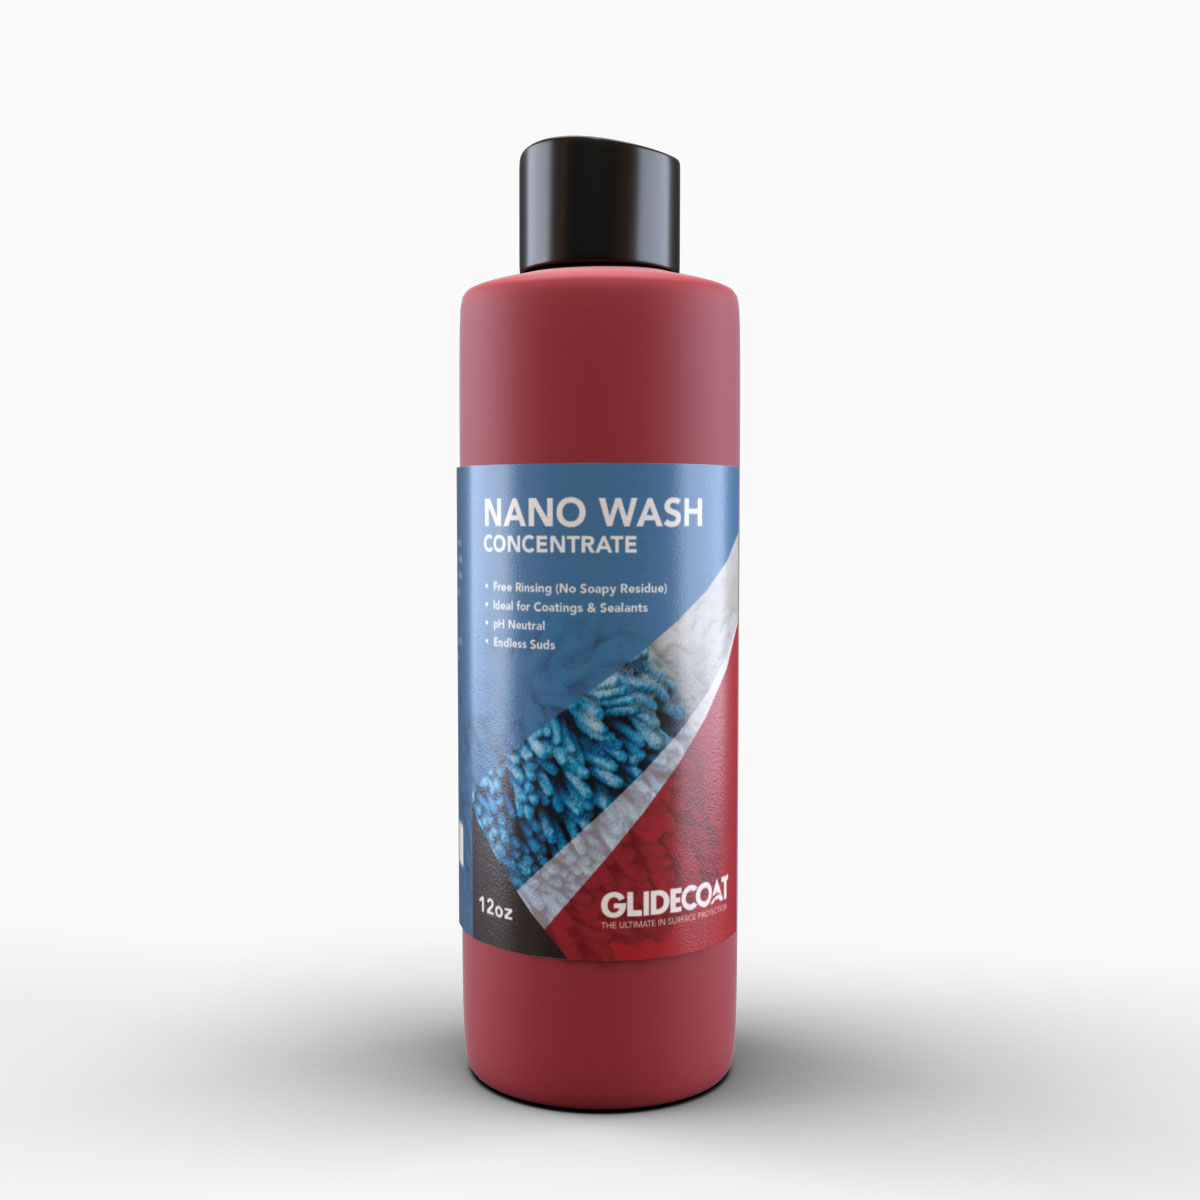 12 oz bottle of Glidecoat Nano Wash